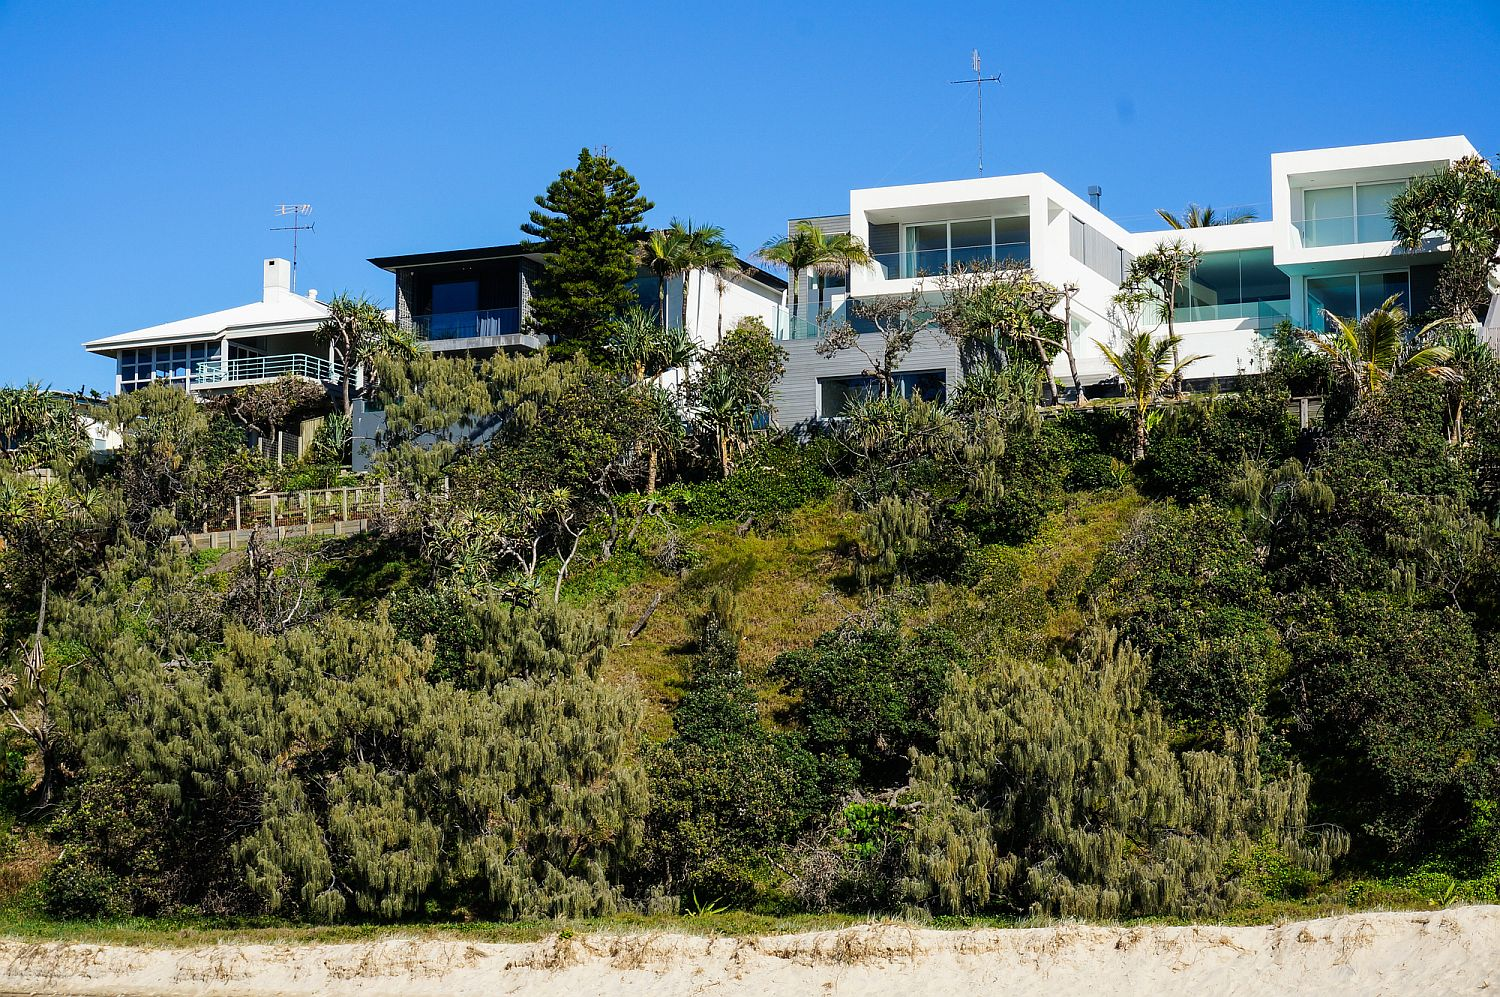 Natural-greenery-coupled-with-sandy-dunes-shape-the-landscape-around-the-Sunshine-Beach-House